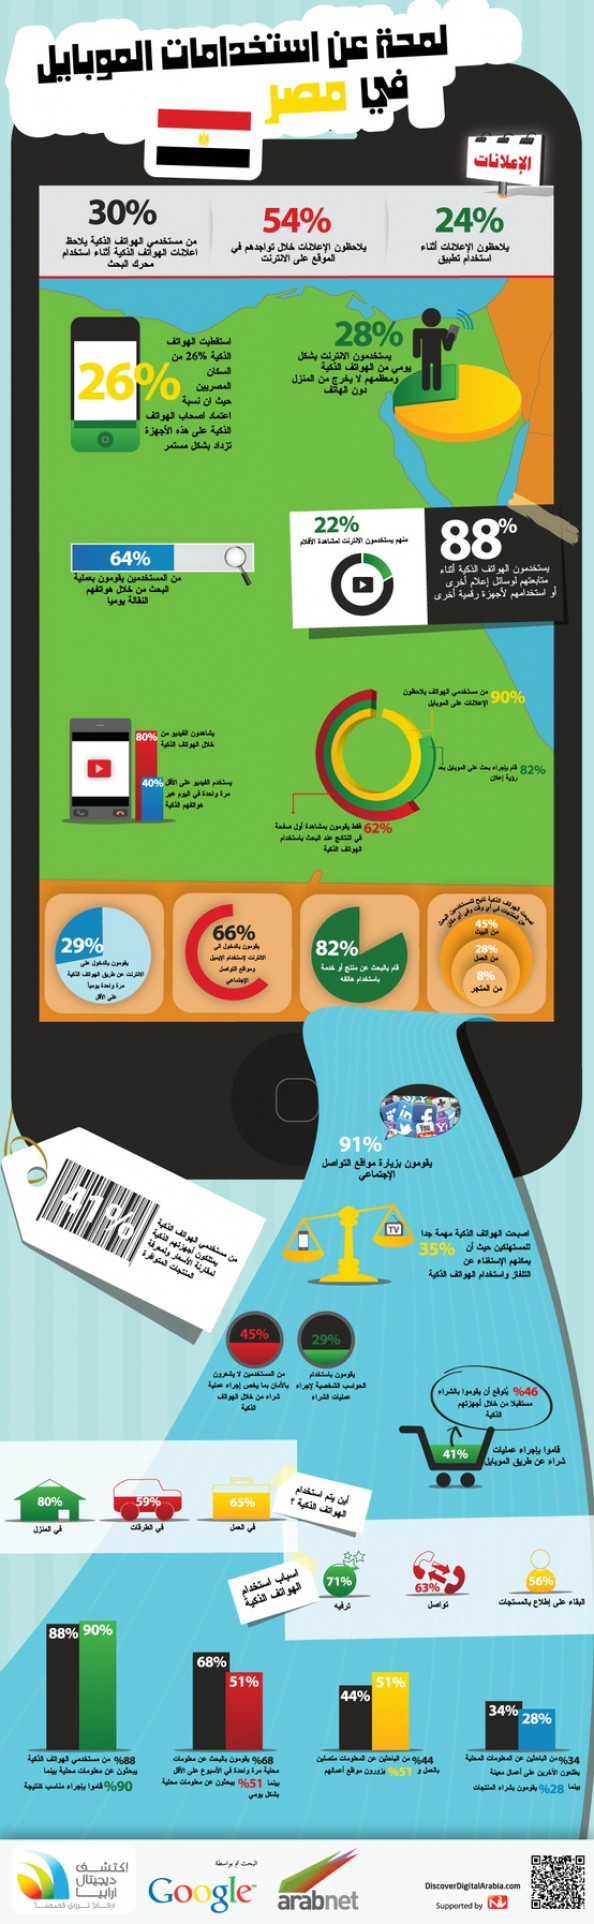 Mobile Usage in Egypt Infographic